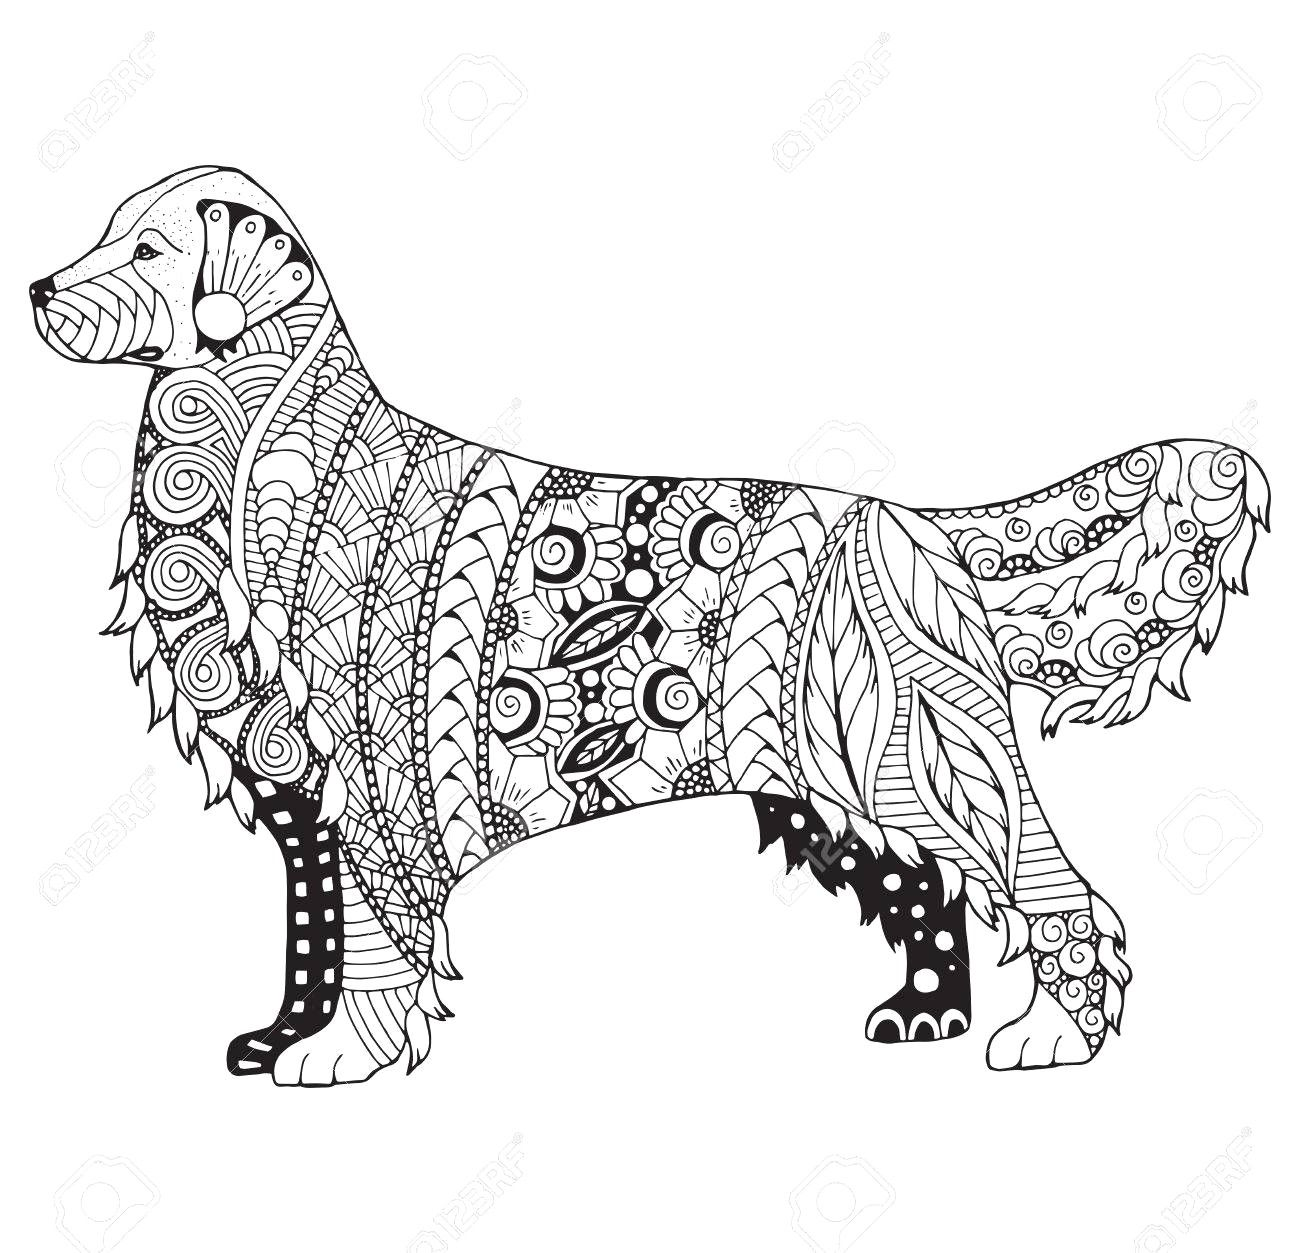 Golden Retriever Coloring Page Golden Retriever Coloring Pages 17